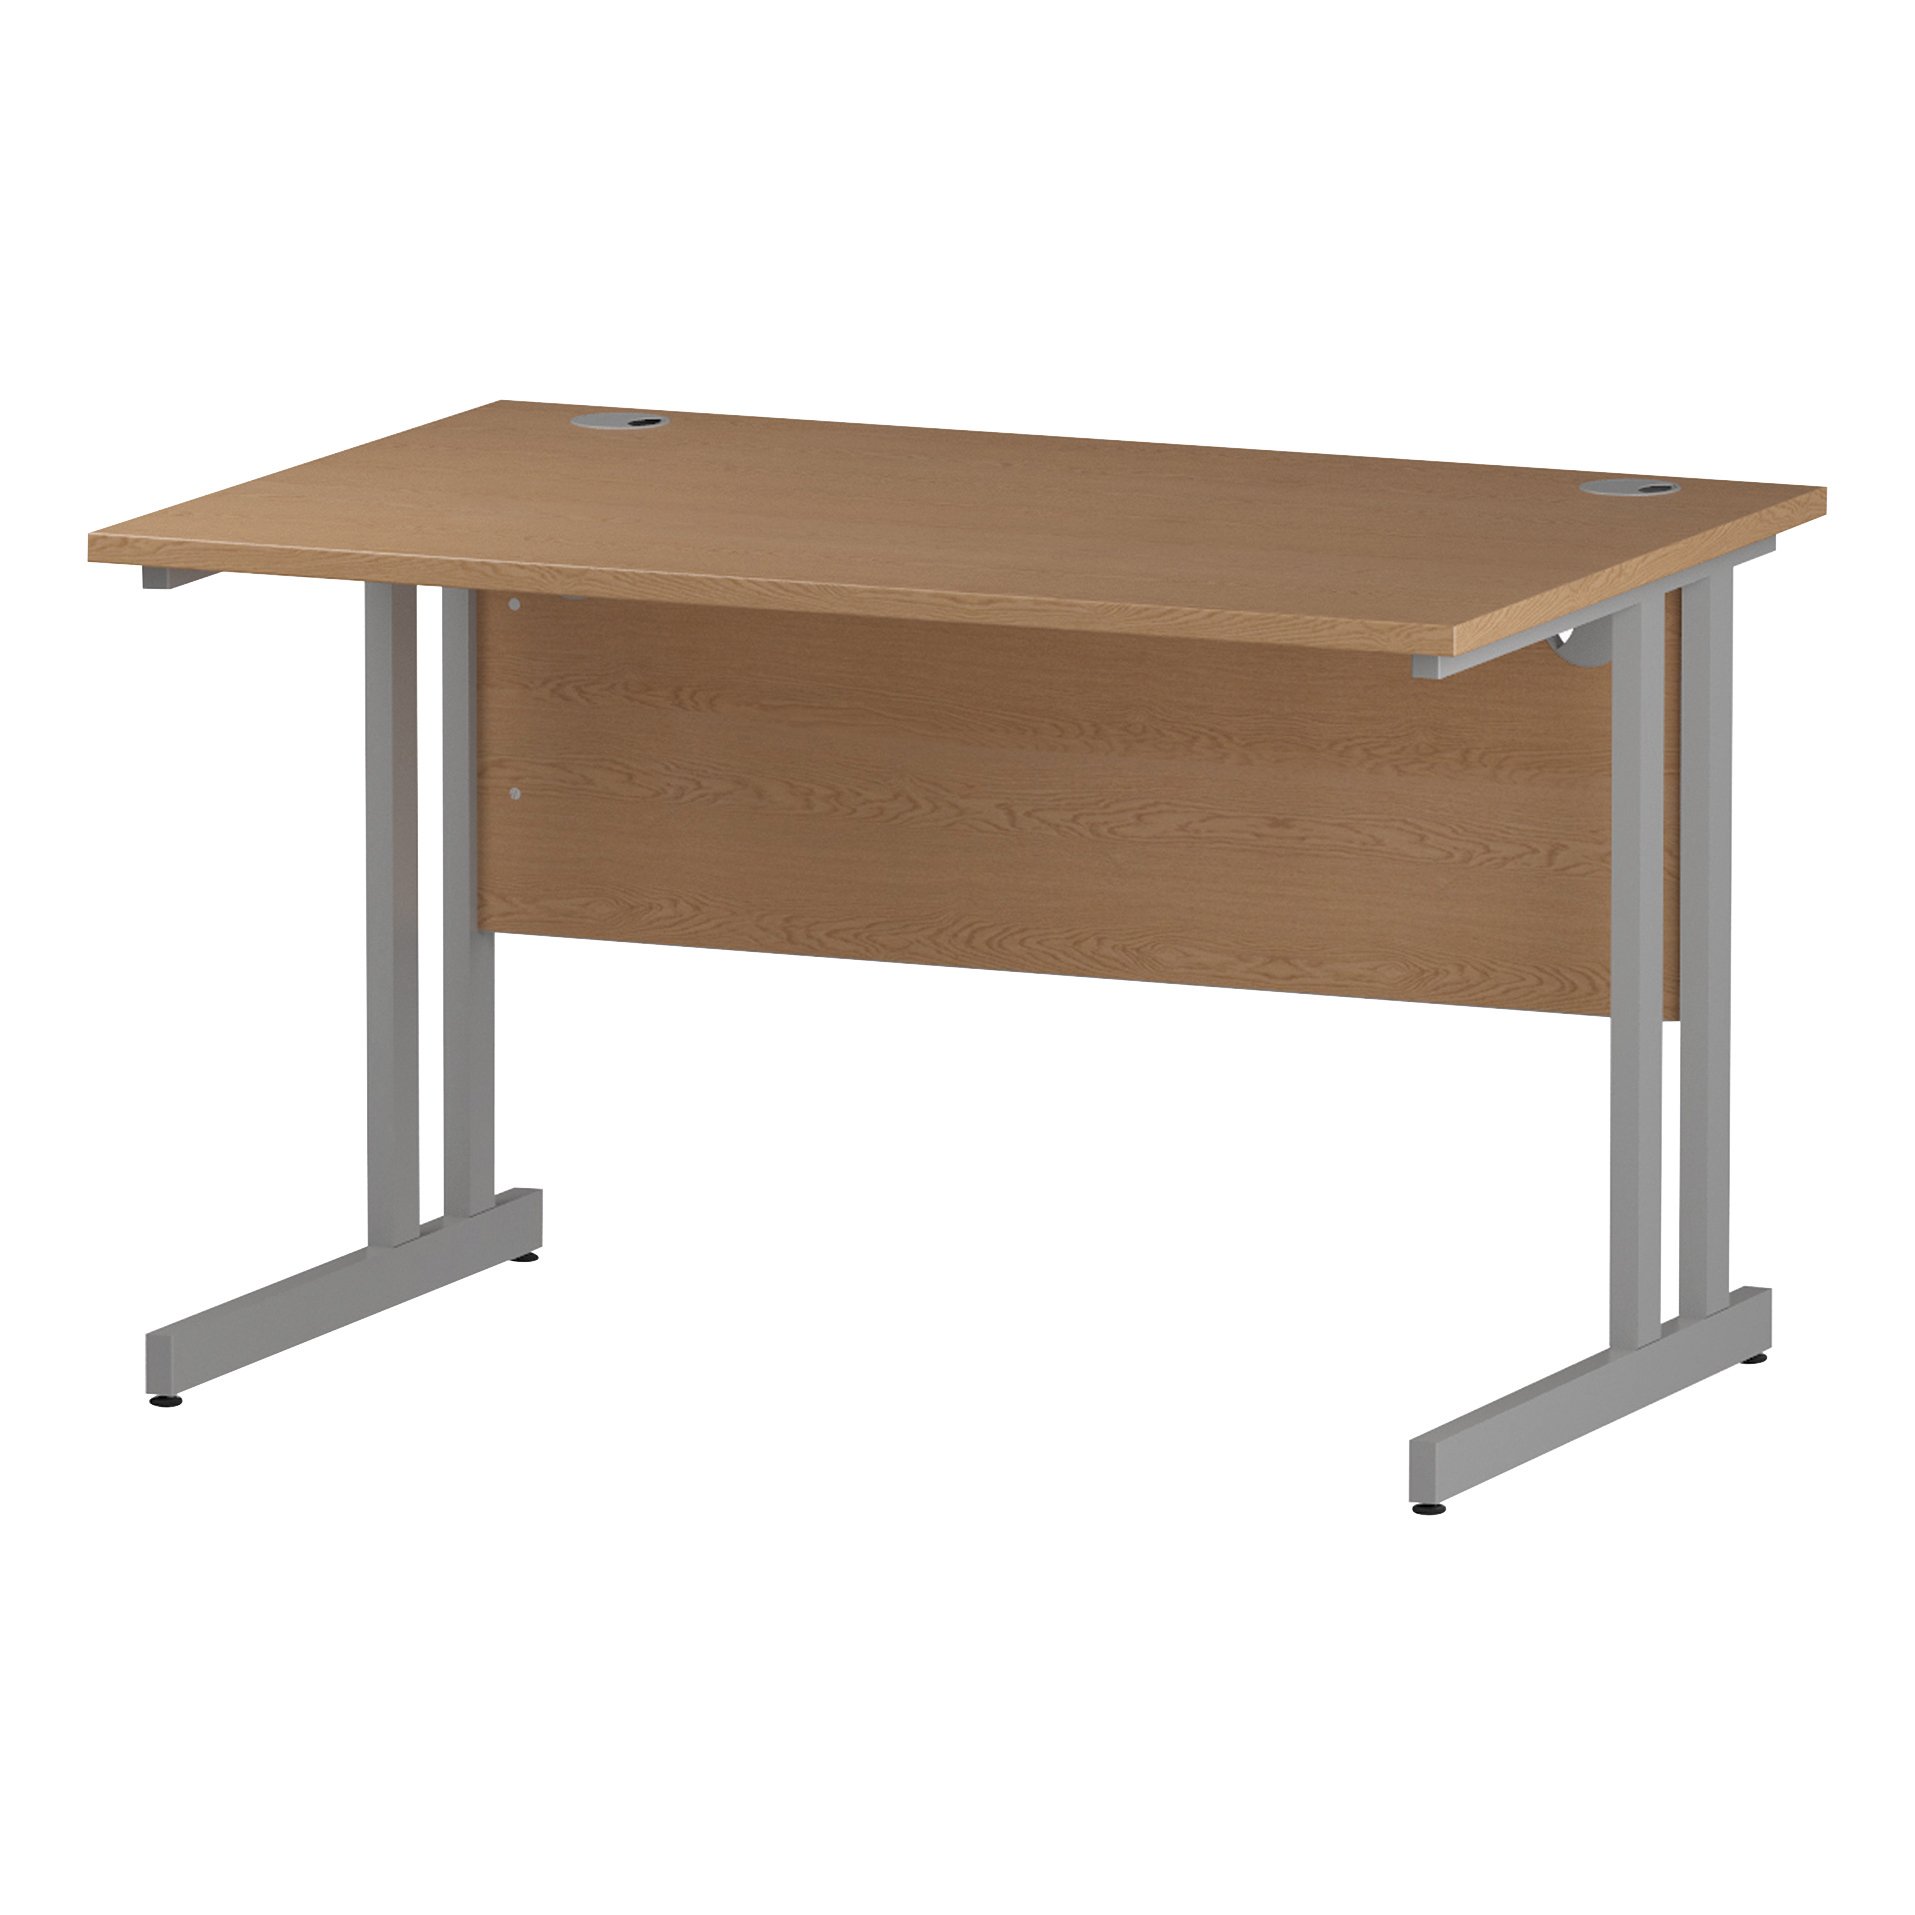 Trexus Rectangular Desk Silver Cantilever Leg 1200x800mm Oak Ref I000806